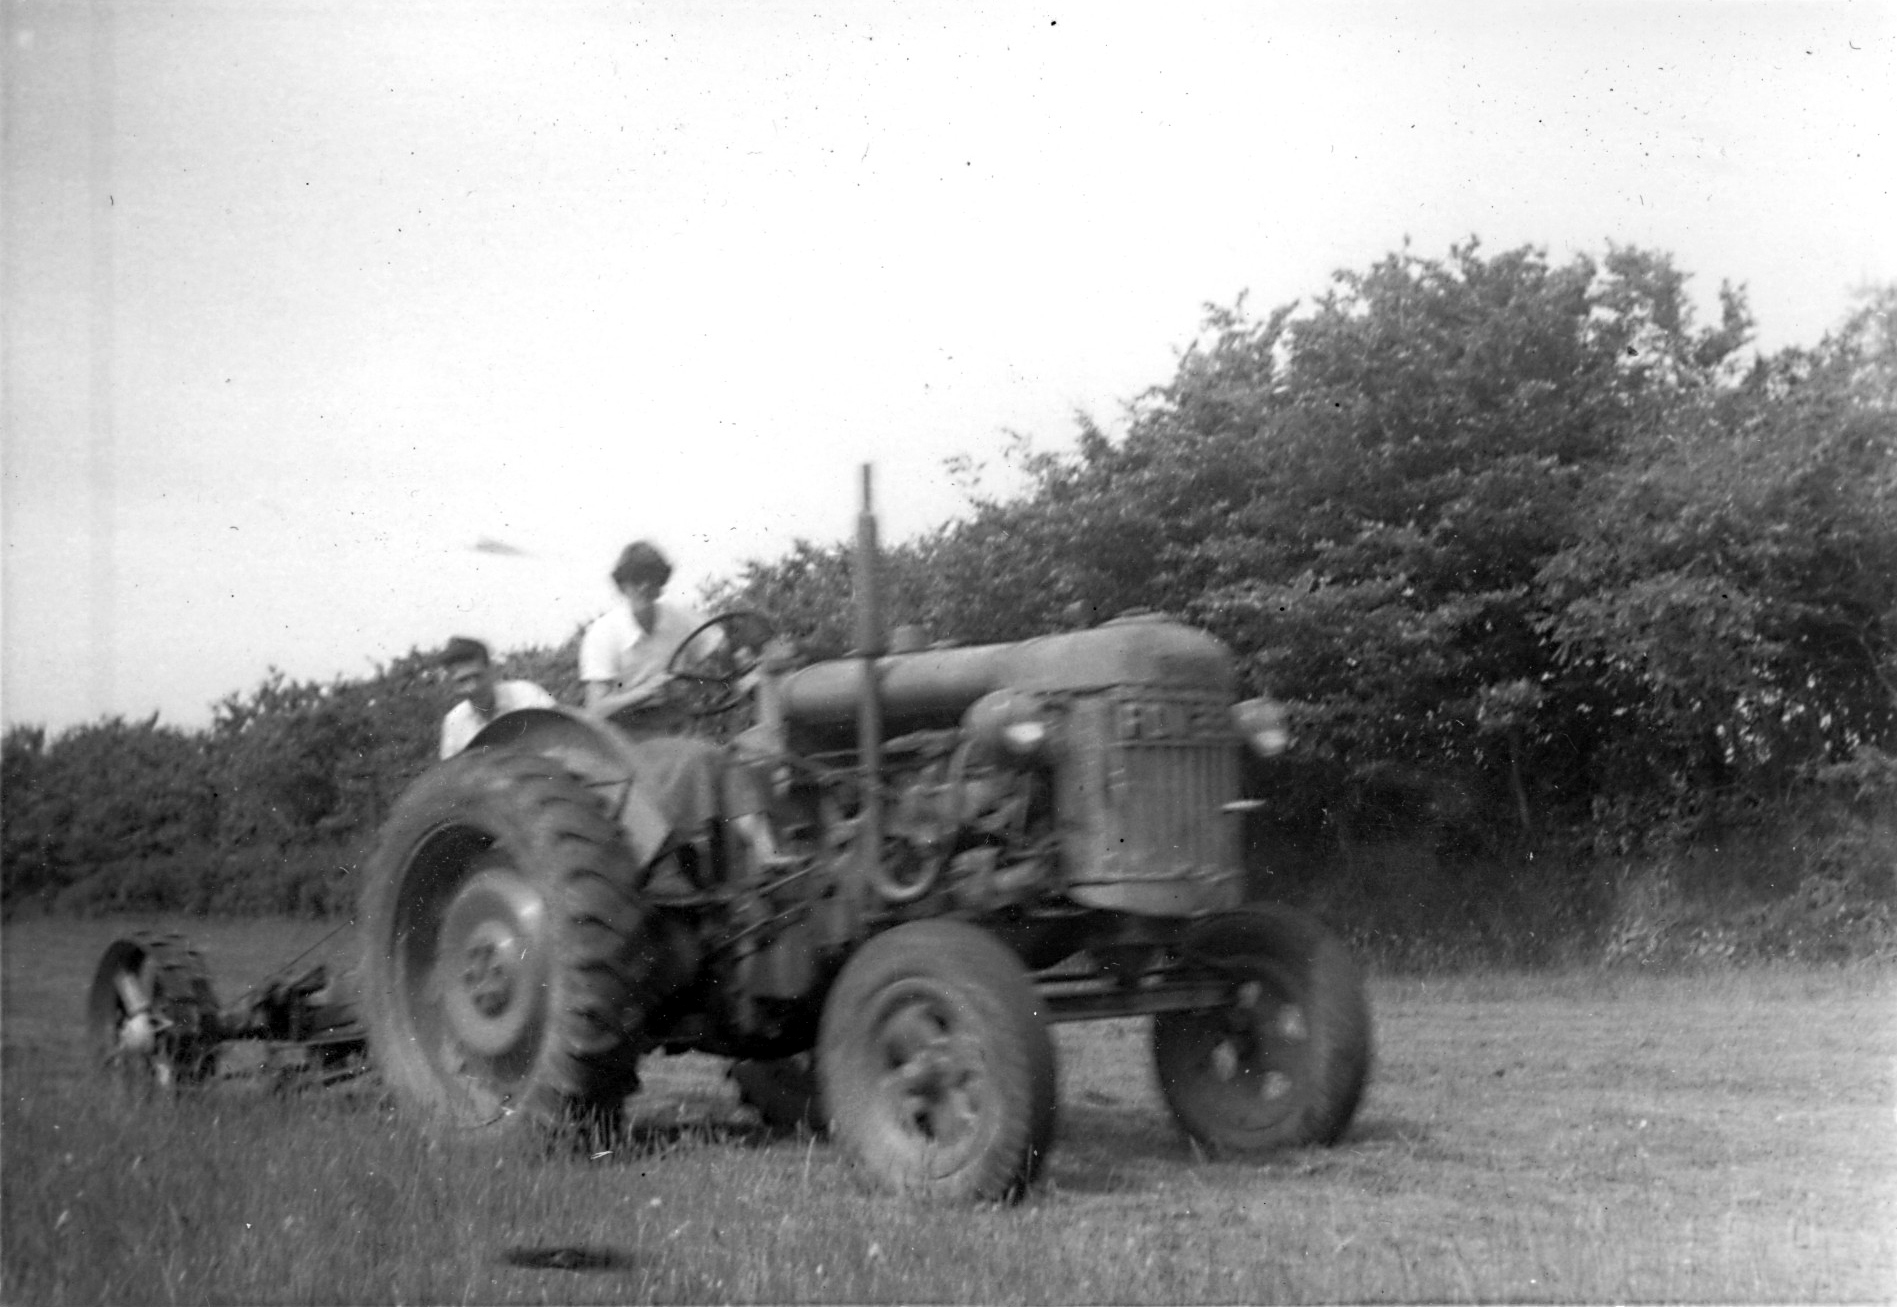 Tractor 1959 -kind permission of Emma Tucker